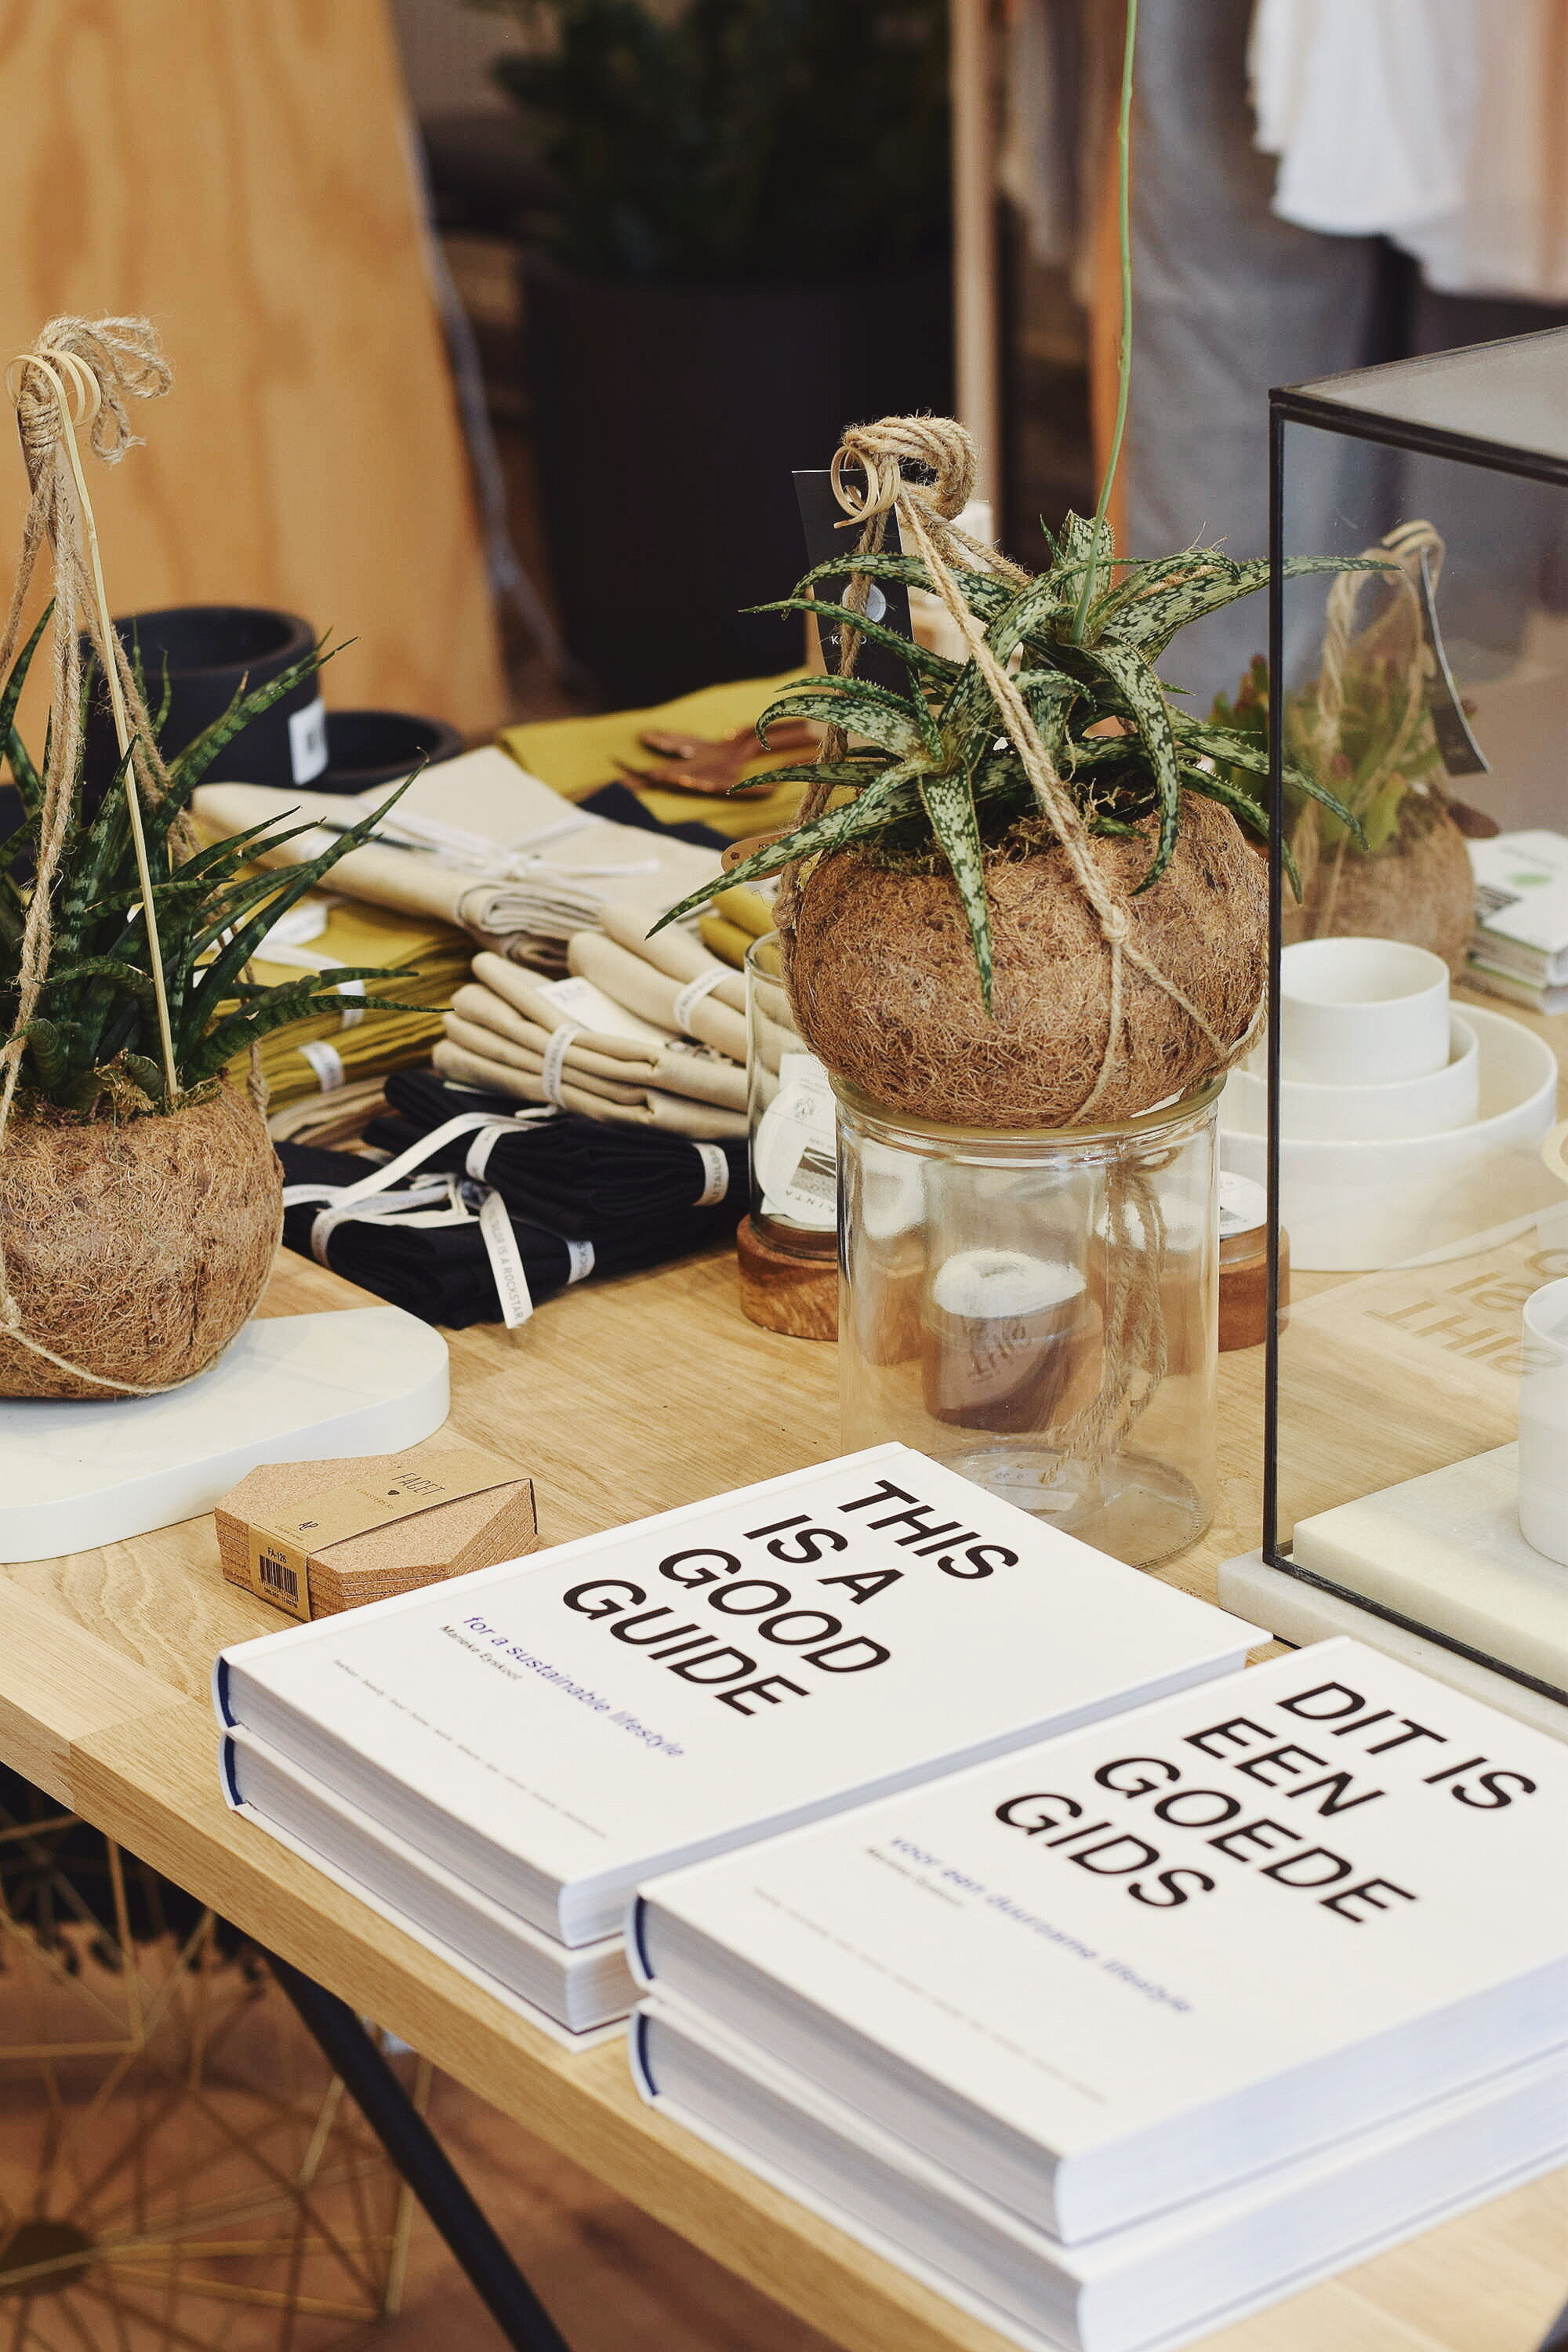 This is Studio Jux, a store that sells their own sustainable brand made from beautiful materials like hennep, linen and organic cotton. You can also find other sustainable labels there for women as well as men, children and your home!